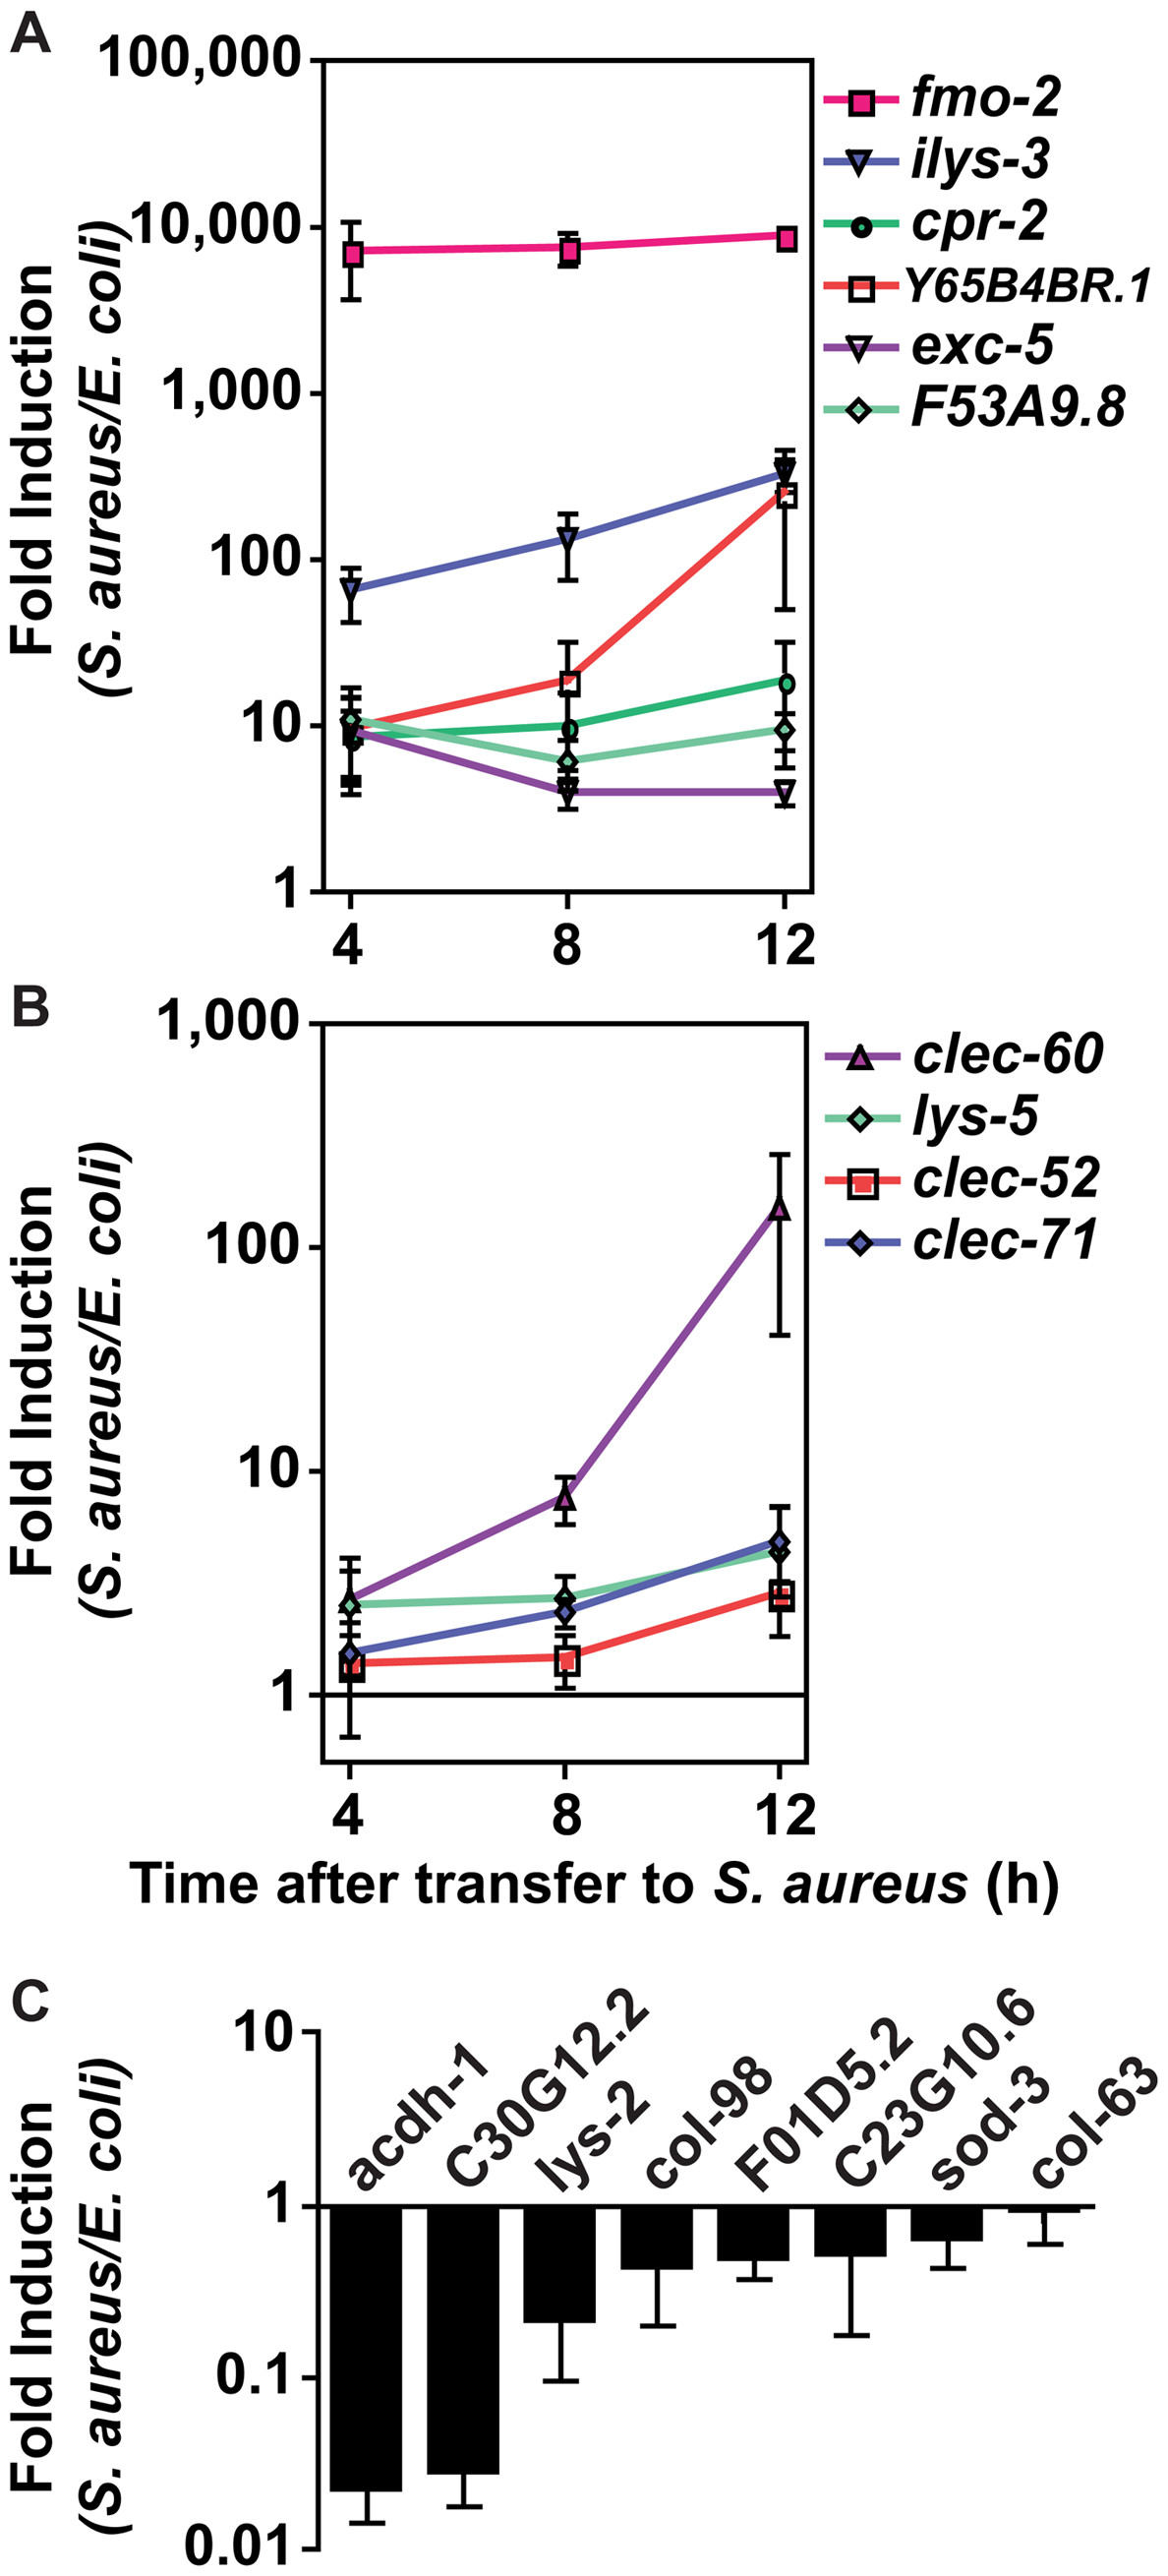 The <i>C. elegans</i> host response to <i>S. aureus</i> infection is comprised of two kinetic groups.